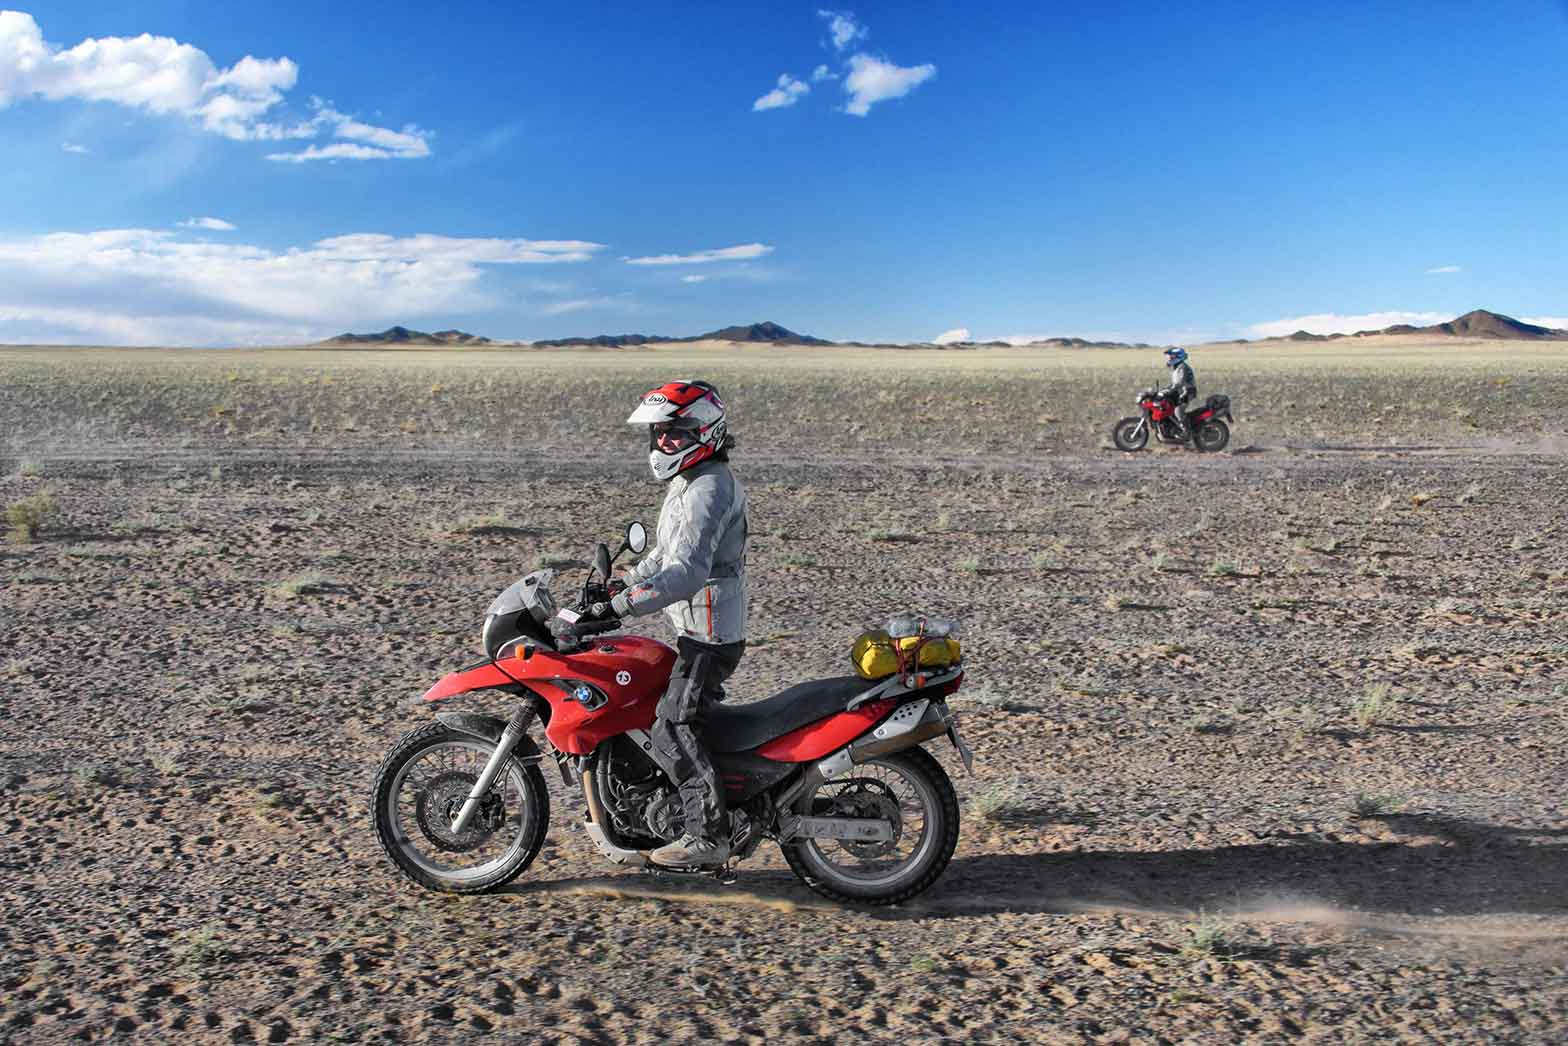 Riding in the semi-desert of northern Mongolia.